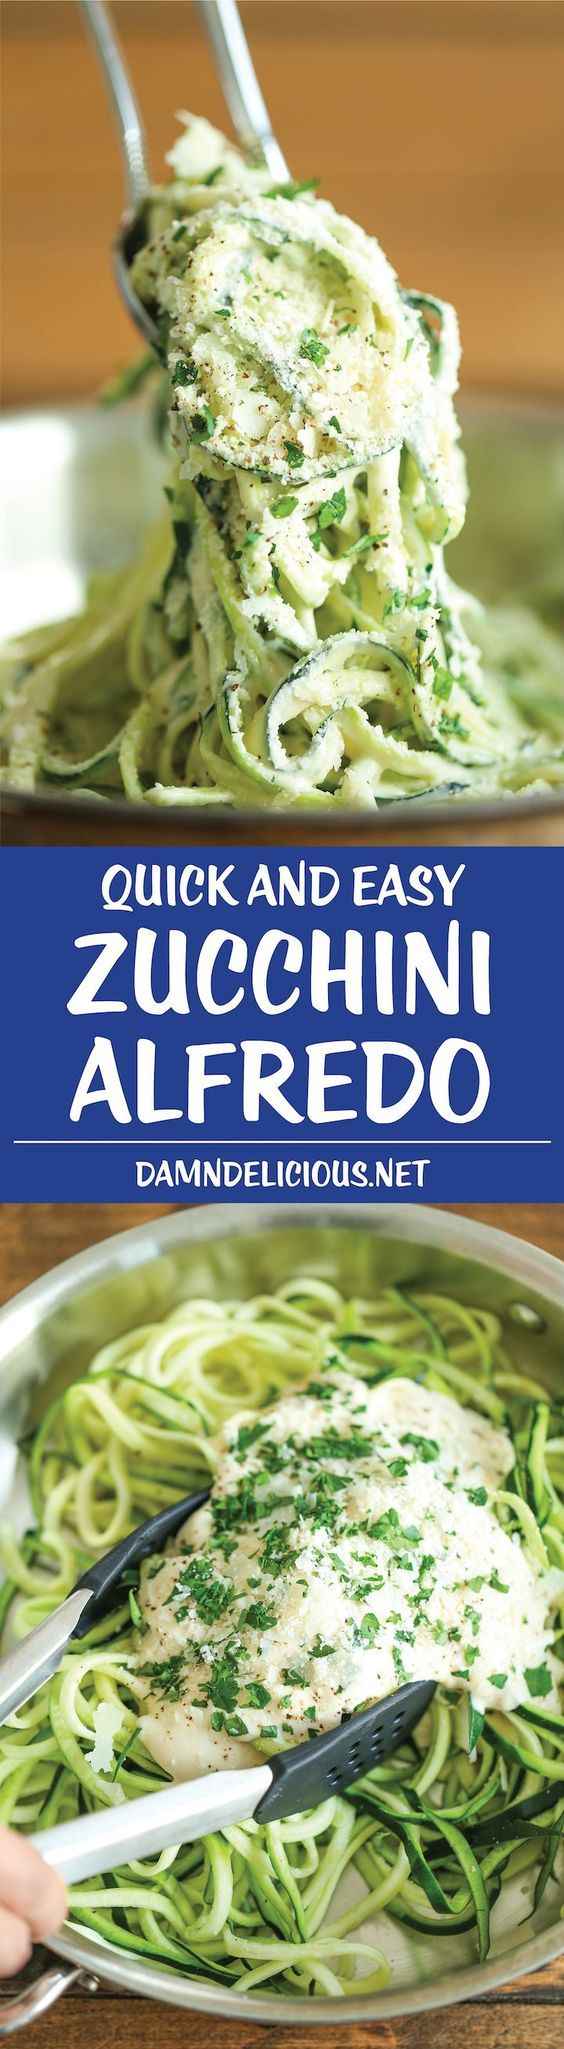 Zucchini Alfredo - Healthy decadent amazingly creamy AND low-carb. Finally a guilt-less alfredo dish that the entire family can enjoy! 203.6 calories.